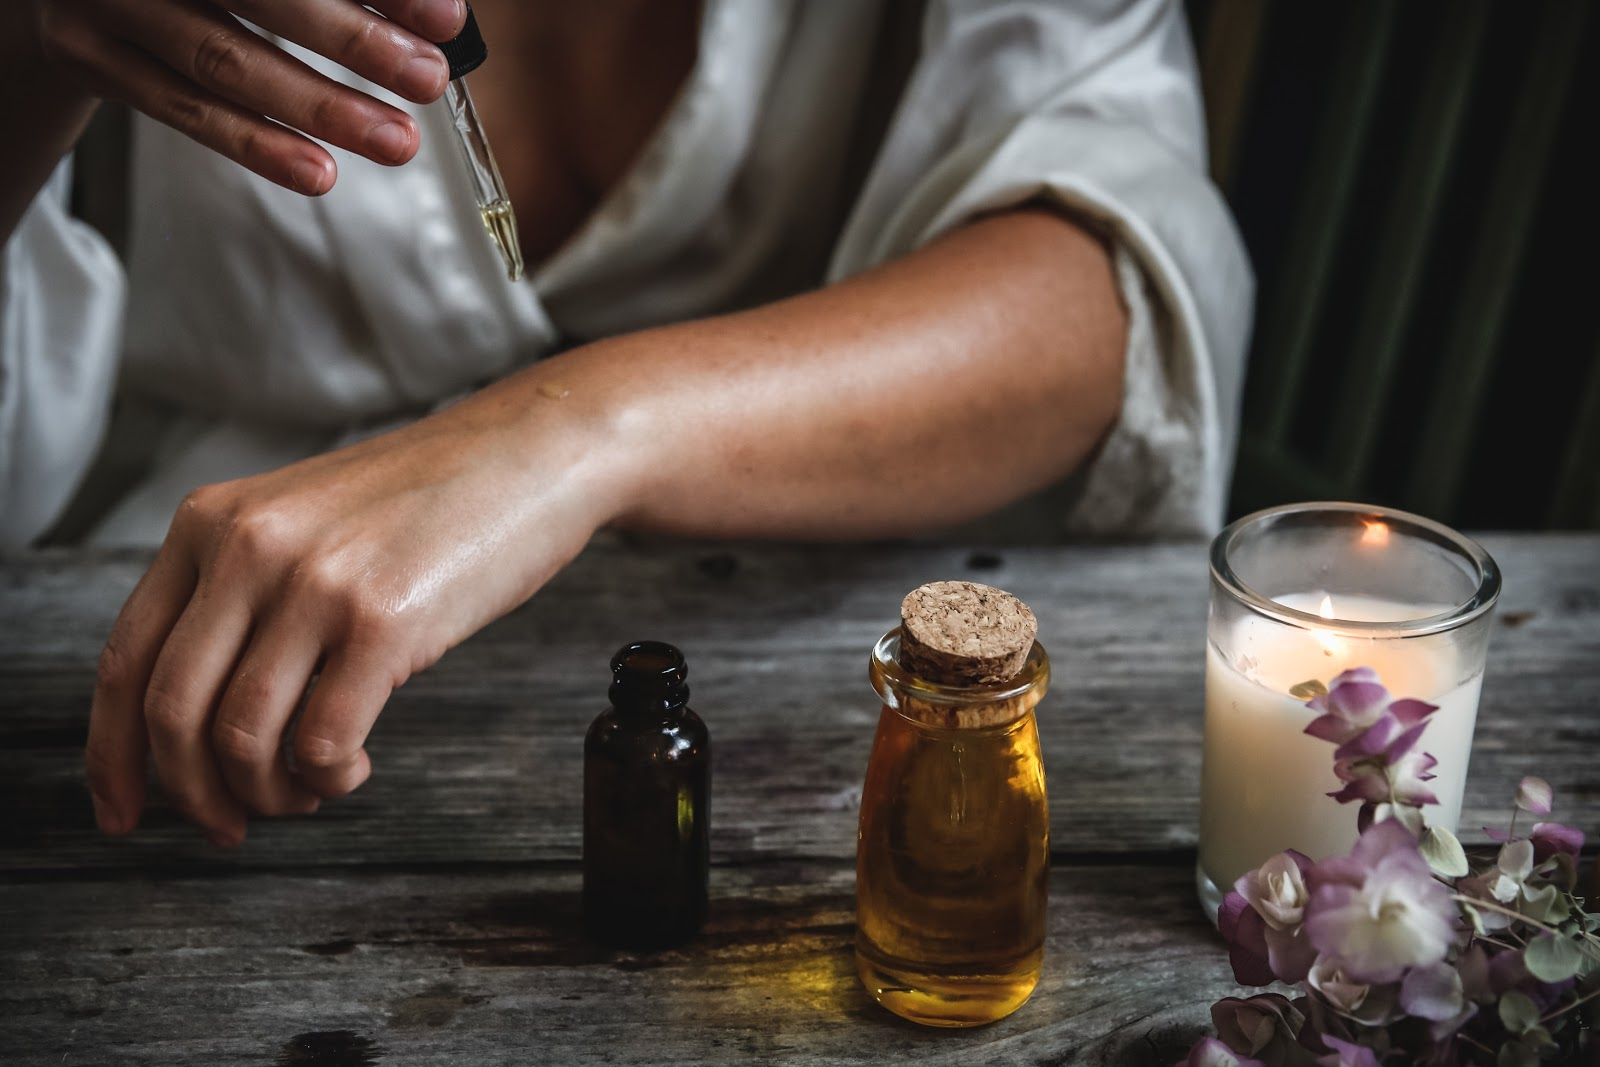 How to get rid of bloating: A woman uses essential oils